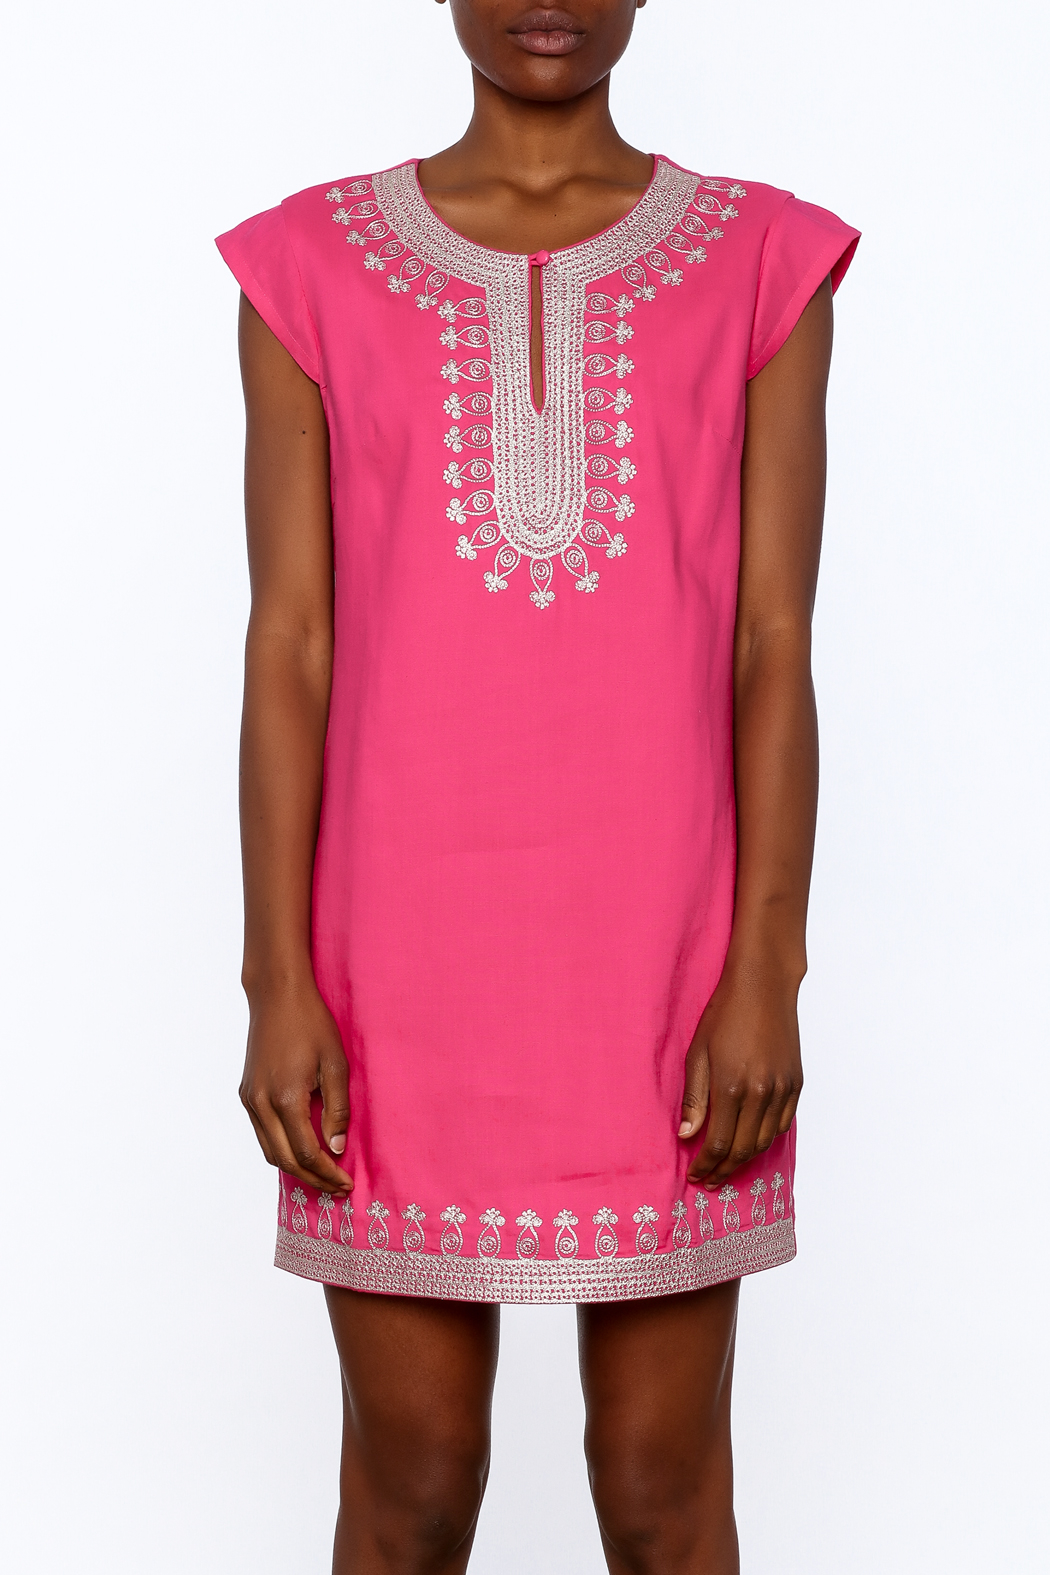 Ark & Co. Pink Tunic Dress - Side Cropped Image